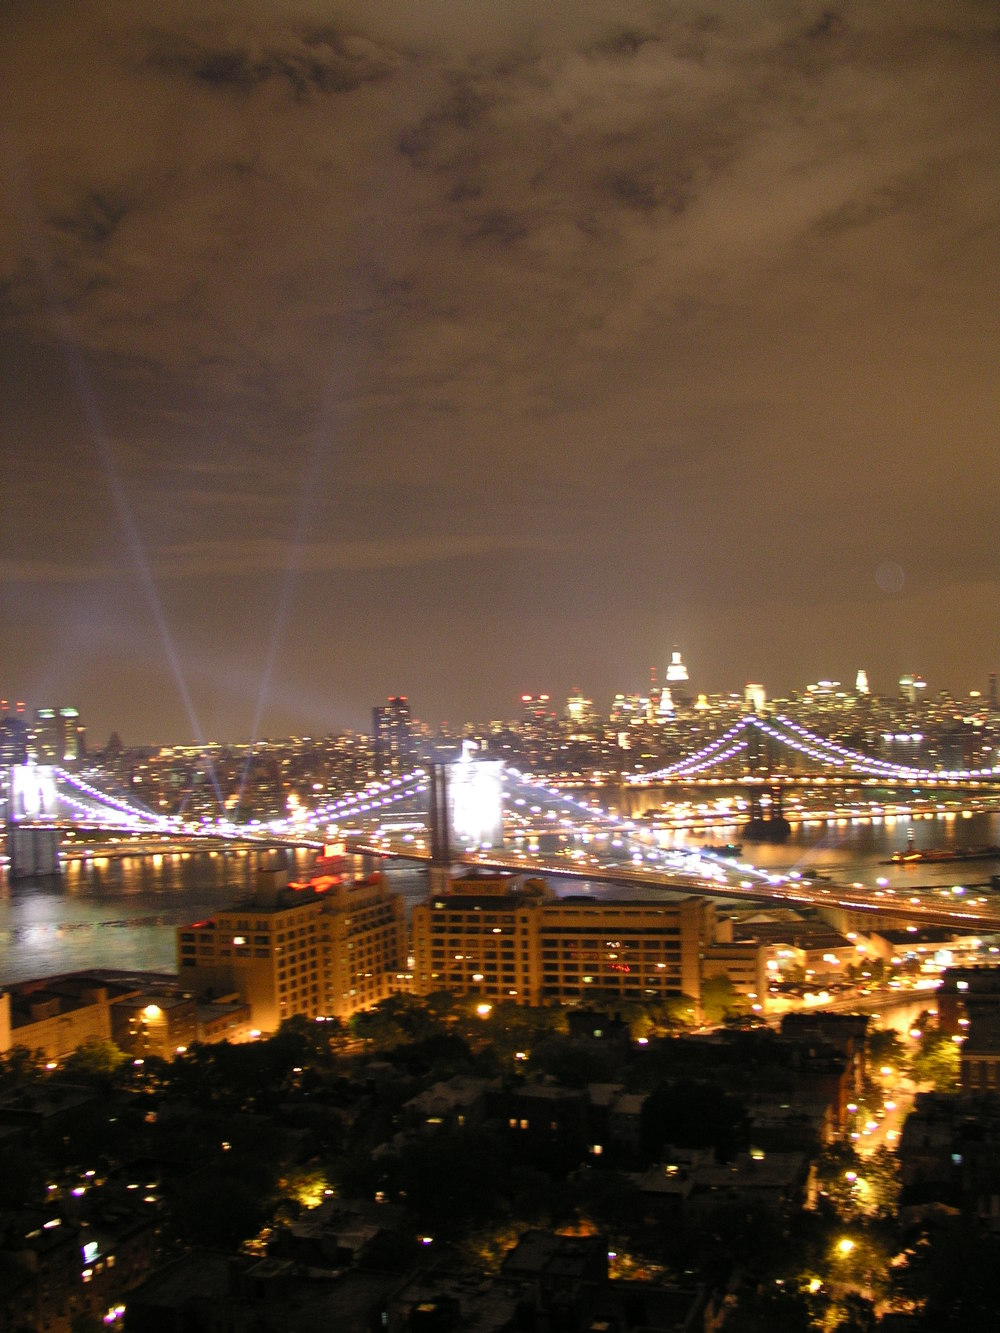 125th Anniversary of the Brooklyn Bridge